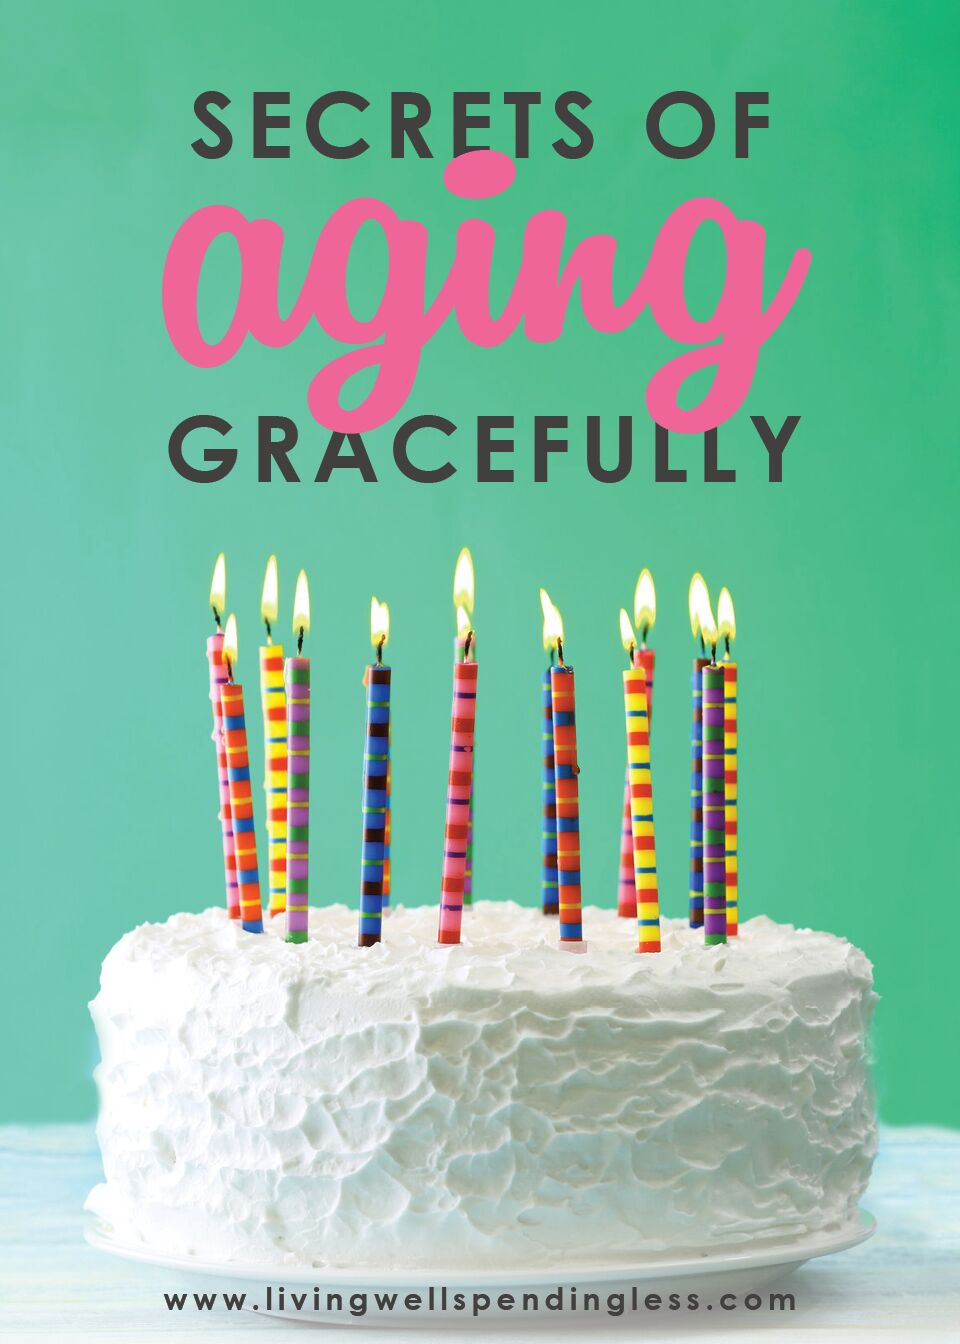 13 Secrets to Aging Gracefully